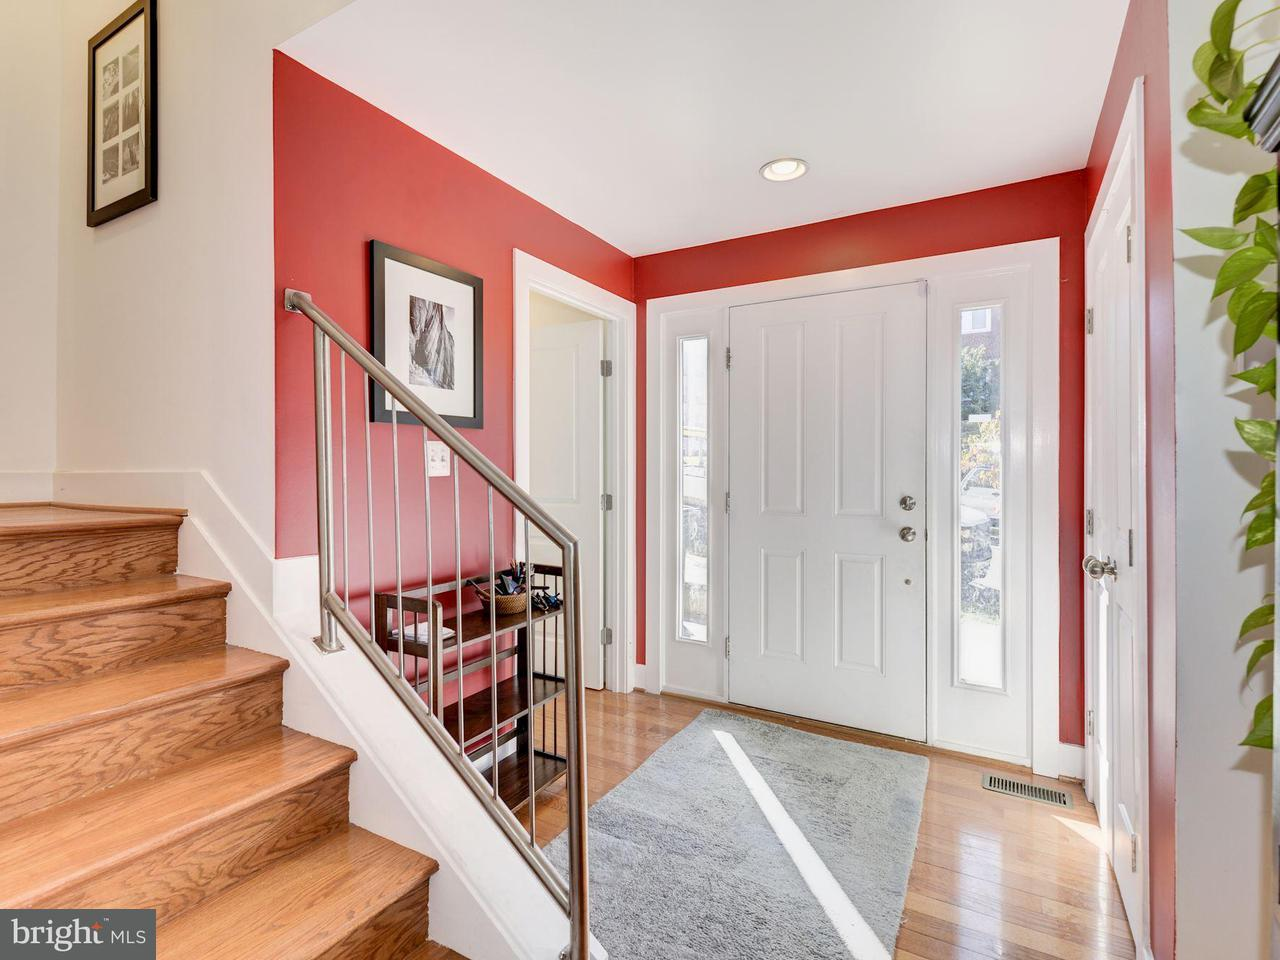 Townhouse for Sale at 1445 ROCK CREEK FORD RD NW 1445 ROCK CREEK FORD RD NW Washington, District Of Columbia 20011 United States